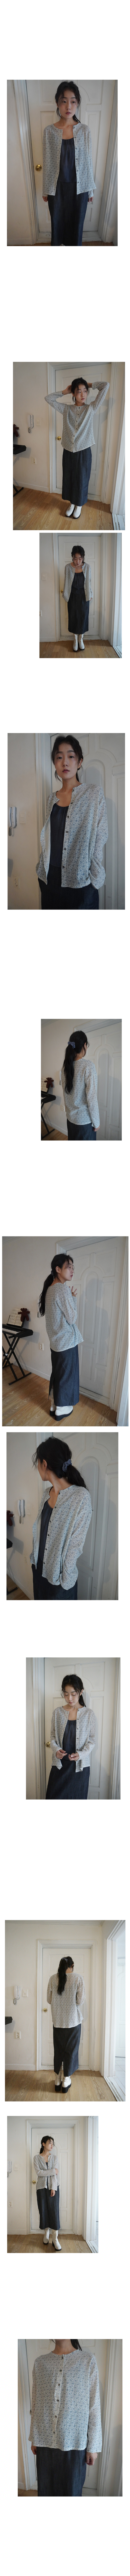 fine paisley blouse or cardigan